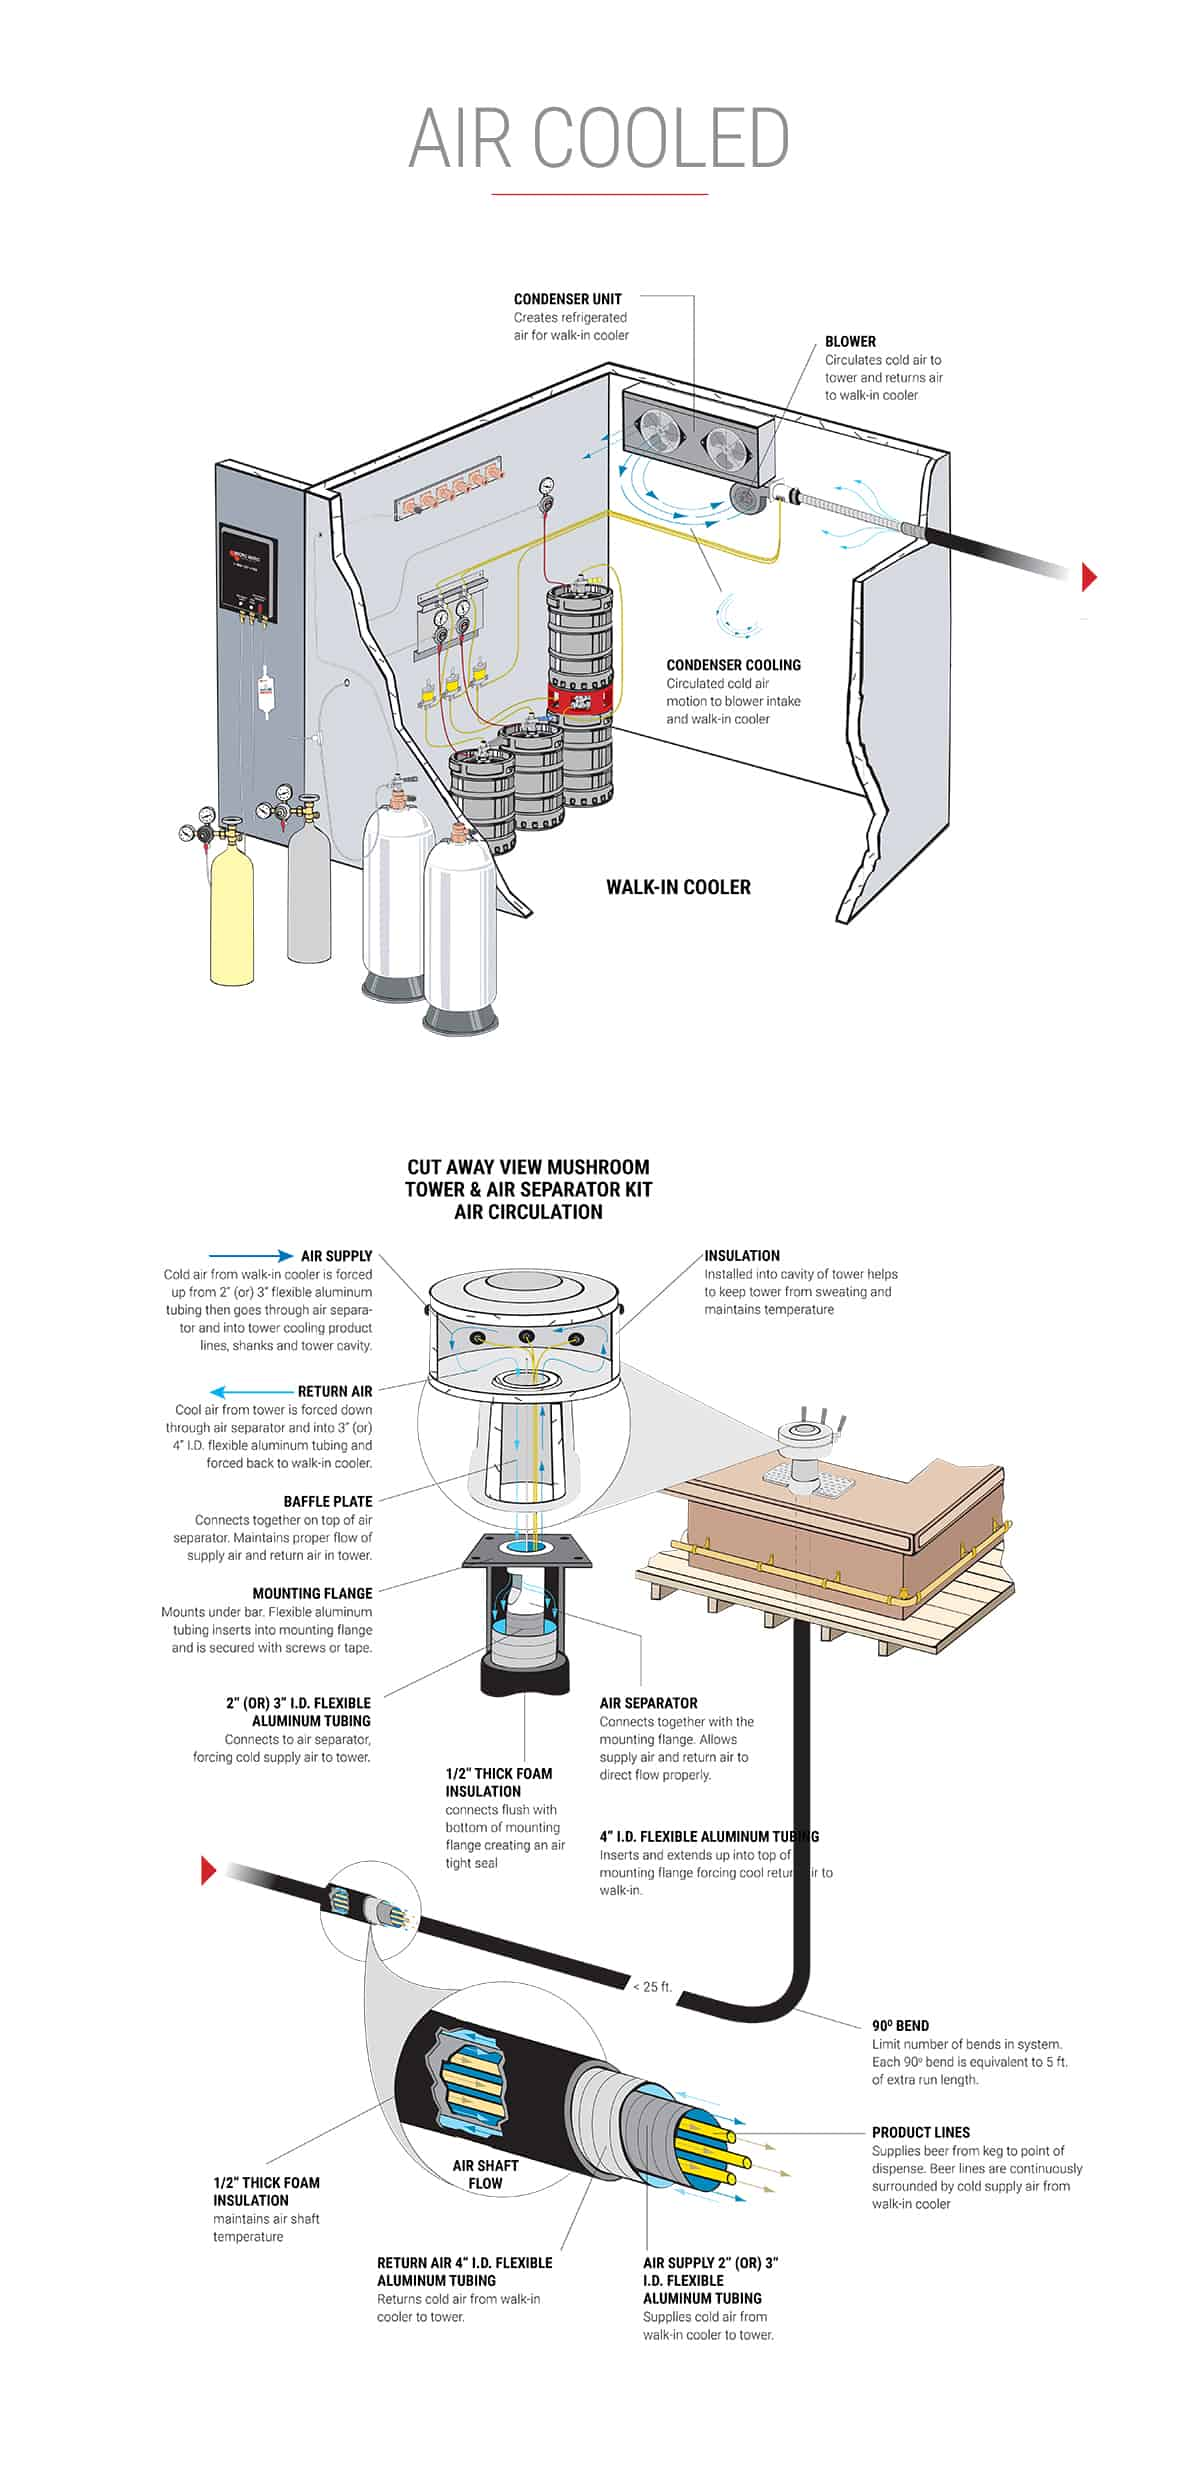 Diagram showing an Air Cooled Beer System